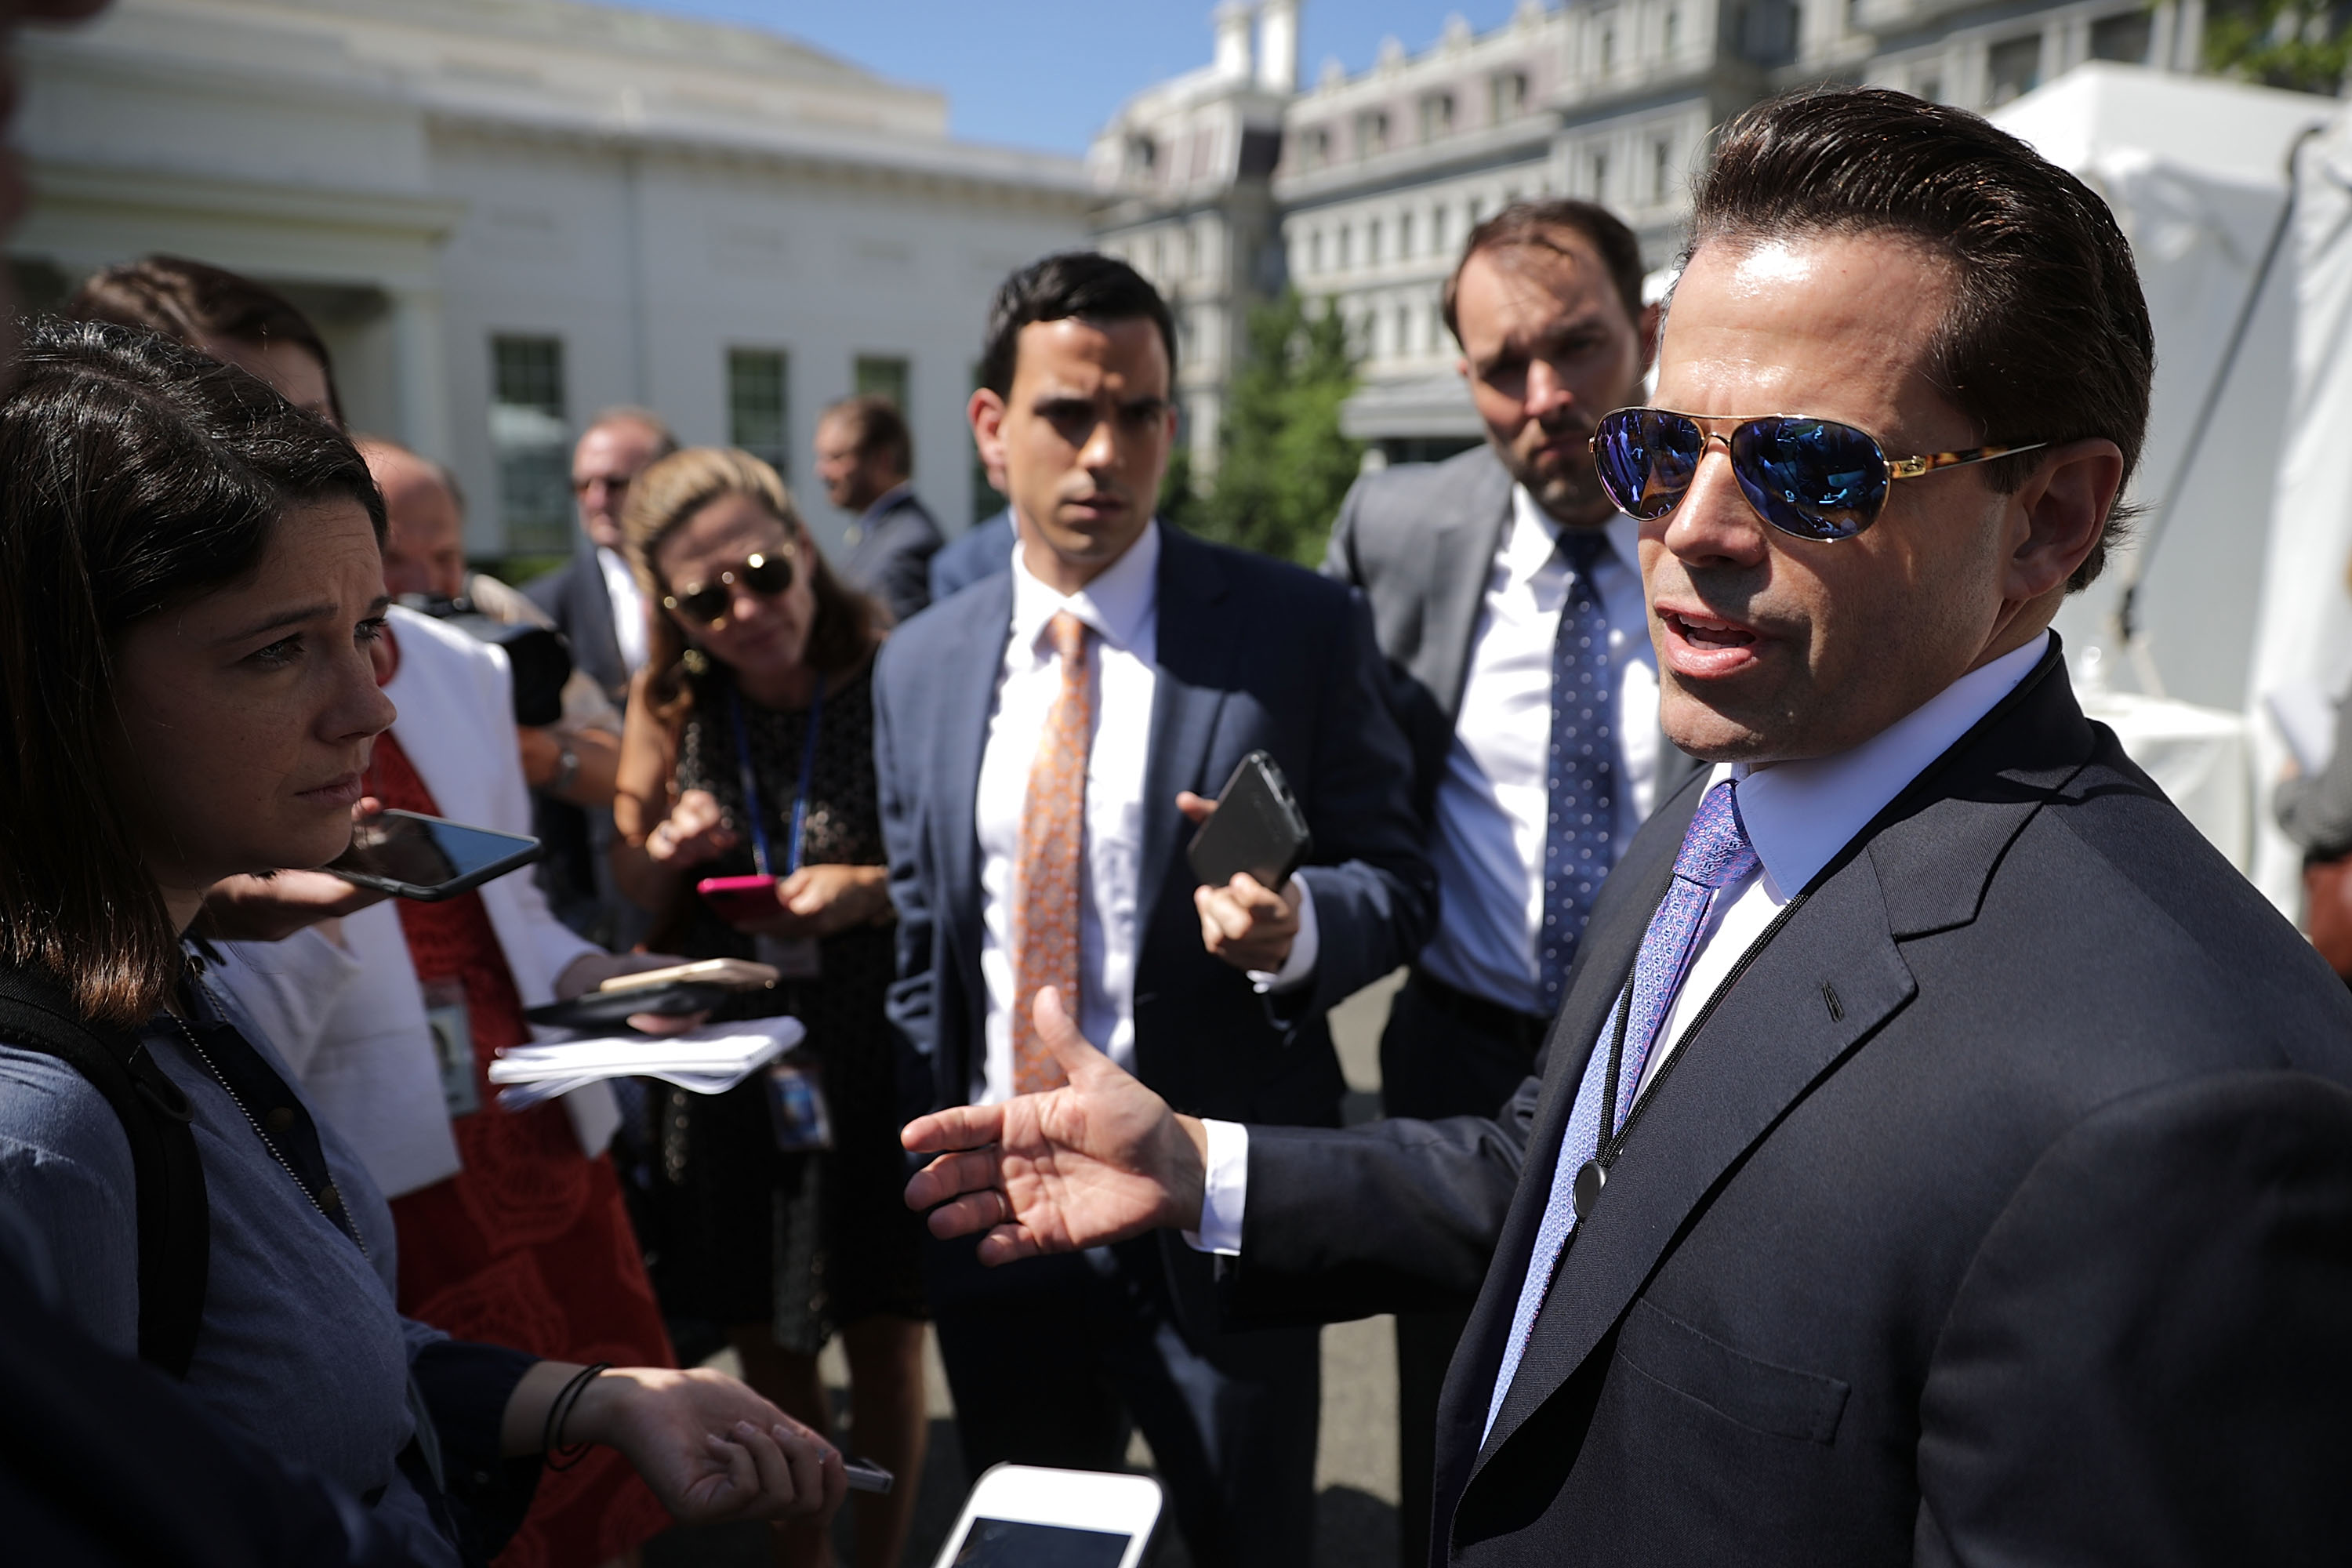 "WASHINGTON, DC - JULY 25: Incoming White House Communications Director Anthony Scaramucci talks with reporters during ""Regional Media Day"" at the White House July 25, 2017 in Washington, DC. Conservative media outlets were invited to set up temporary studios on the north side of the West Wing to interview White House officials and members of President Donald Trump's cabinet. (Photo by Chip Somodevilla/Getty Images)"